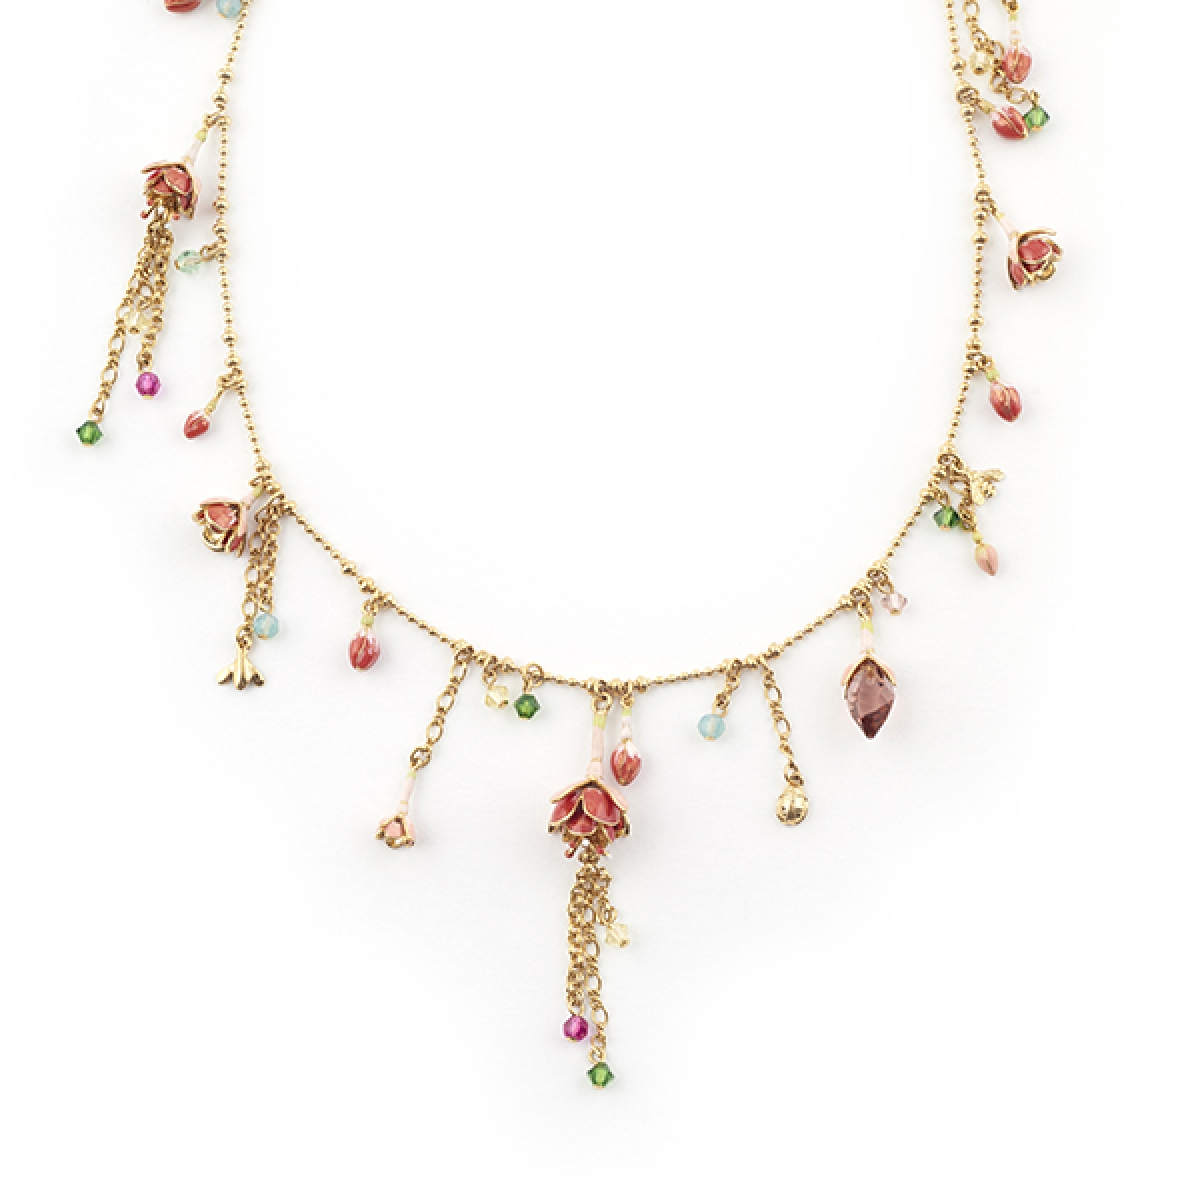 Fuchsia Statement Necklace